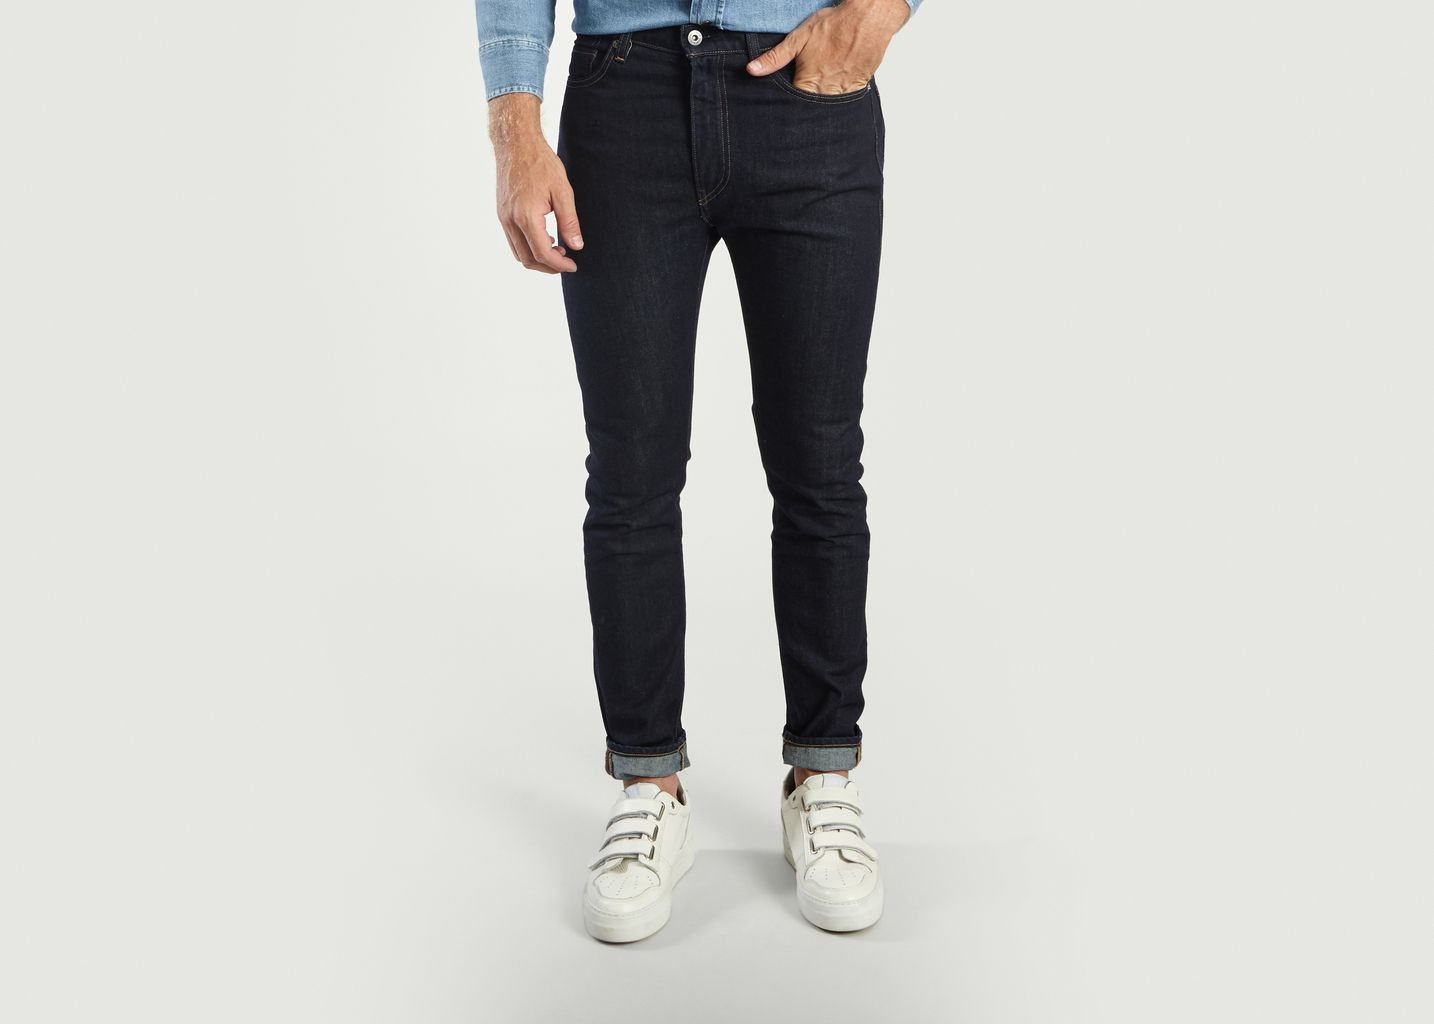 4b5f1167 Skinny 510 Jeans Indigo Levi's Made and Crafted | L'Exception